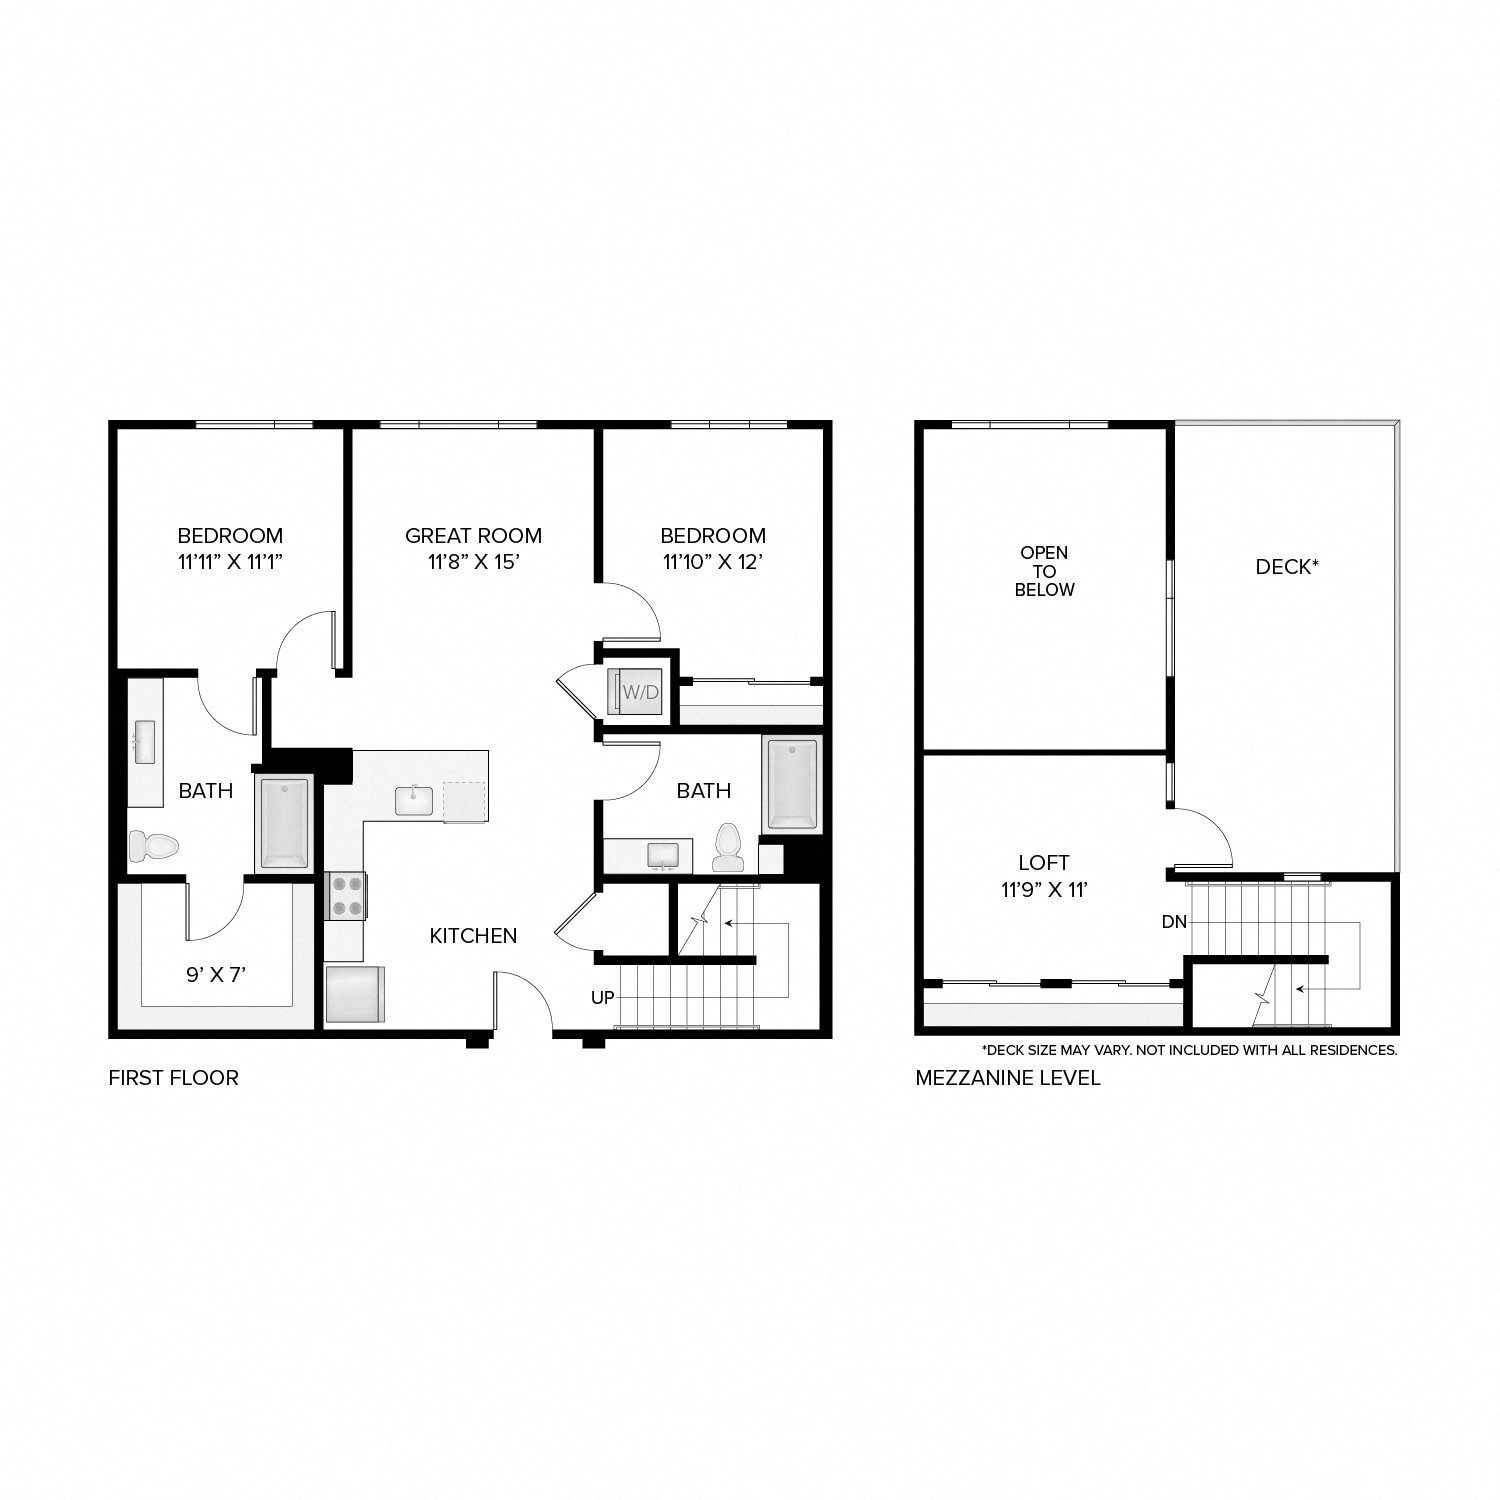 Diagram of the Madison Deluxe Loft floor plan. Two bedrooms, two bathrooms, a loft, an open kitchen and living area, a washer dryer, and in select residences, a deck.